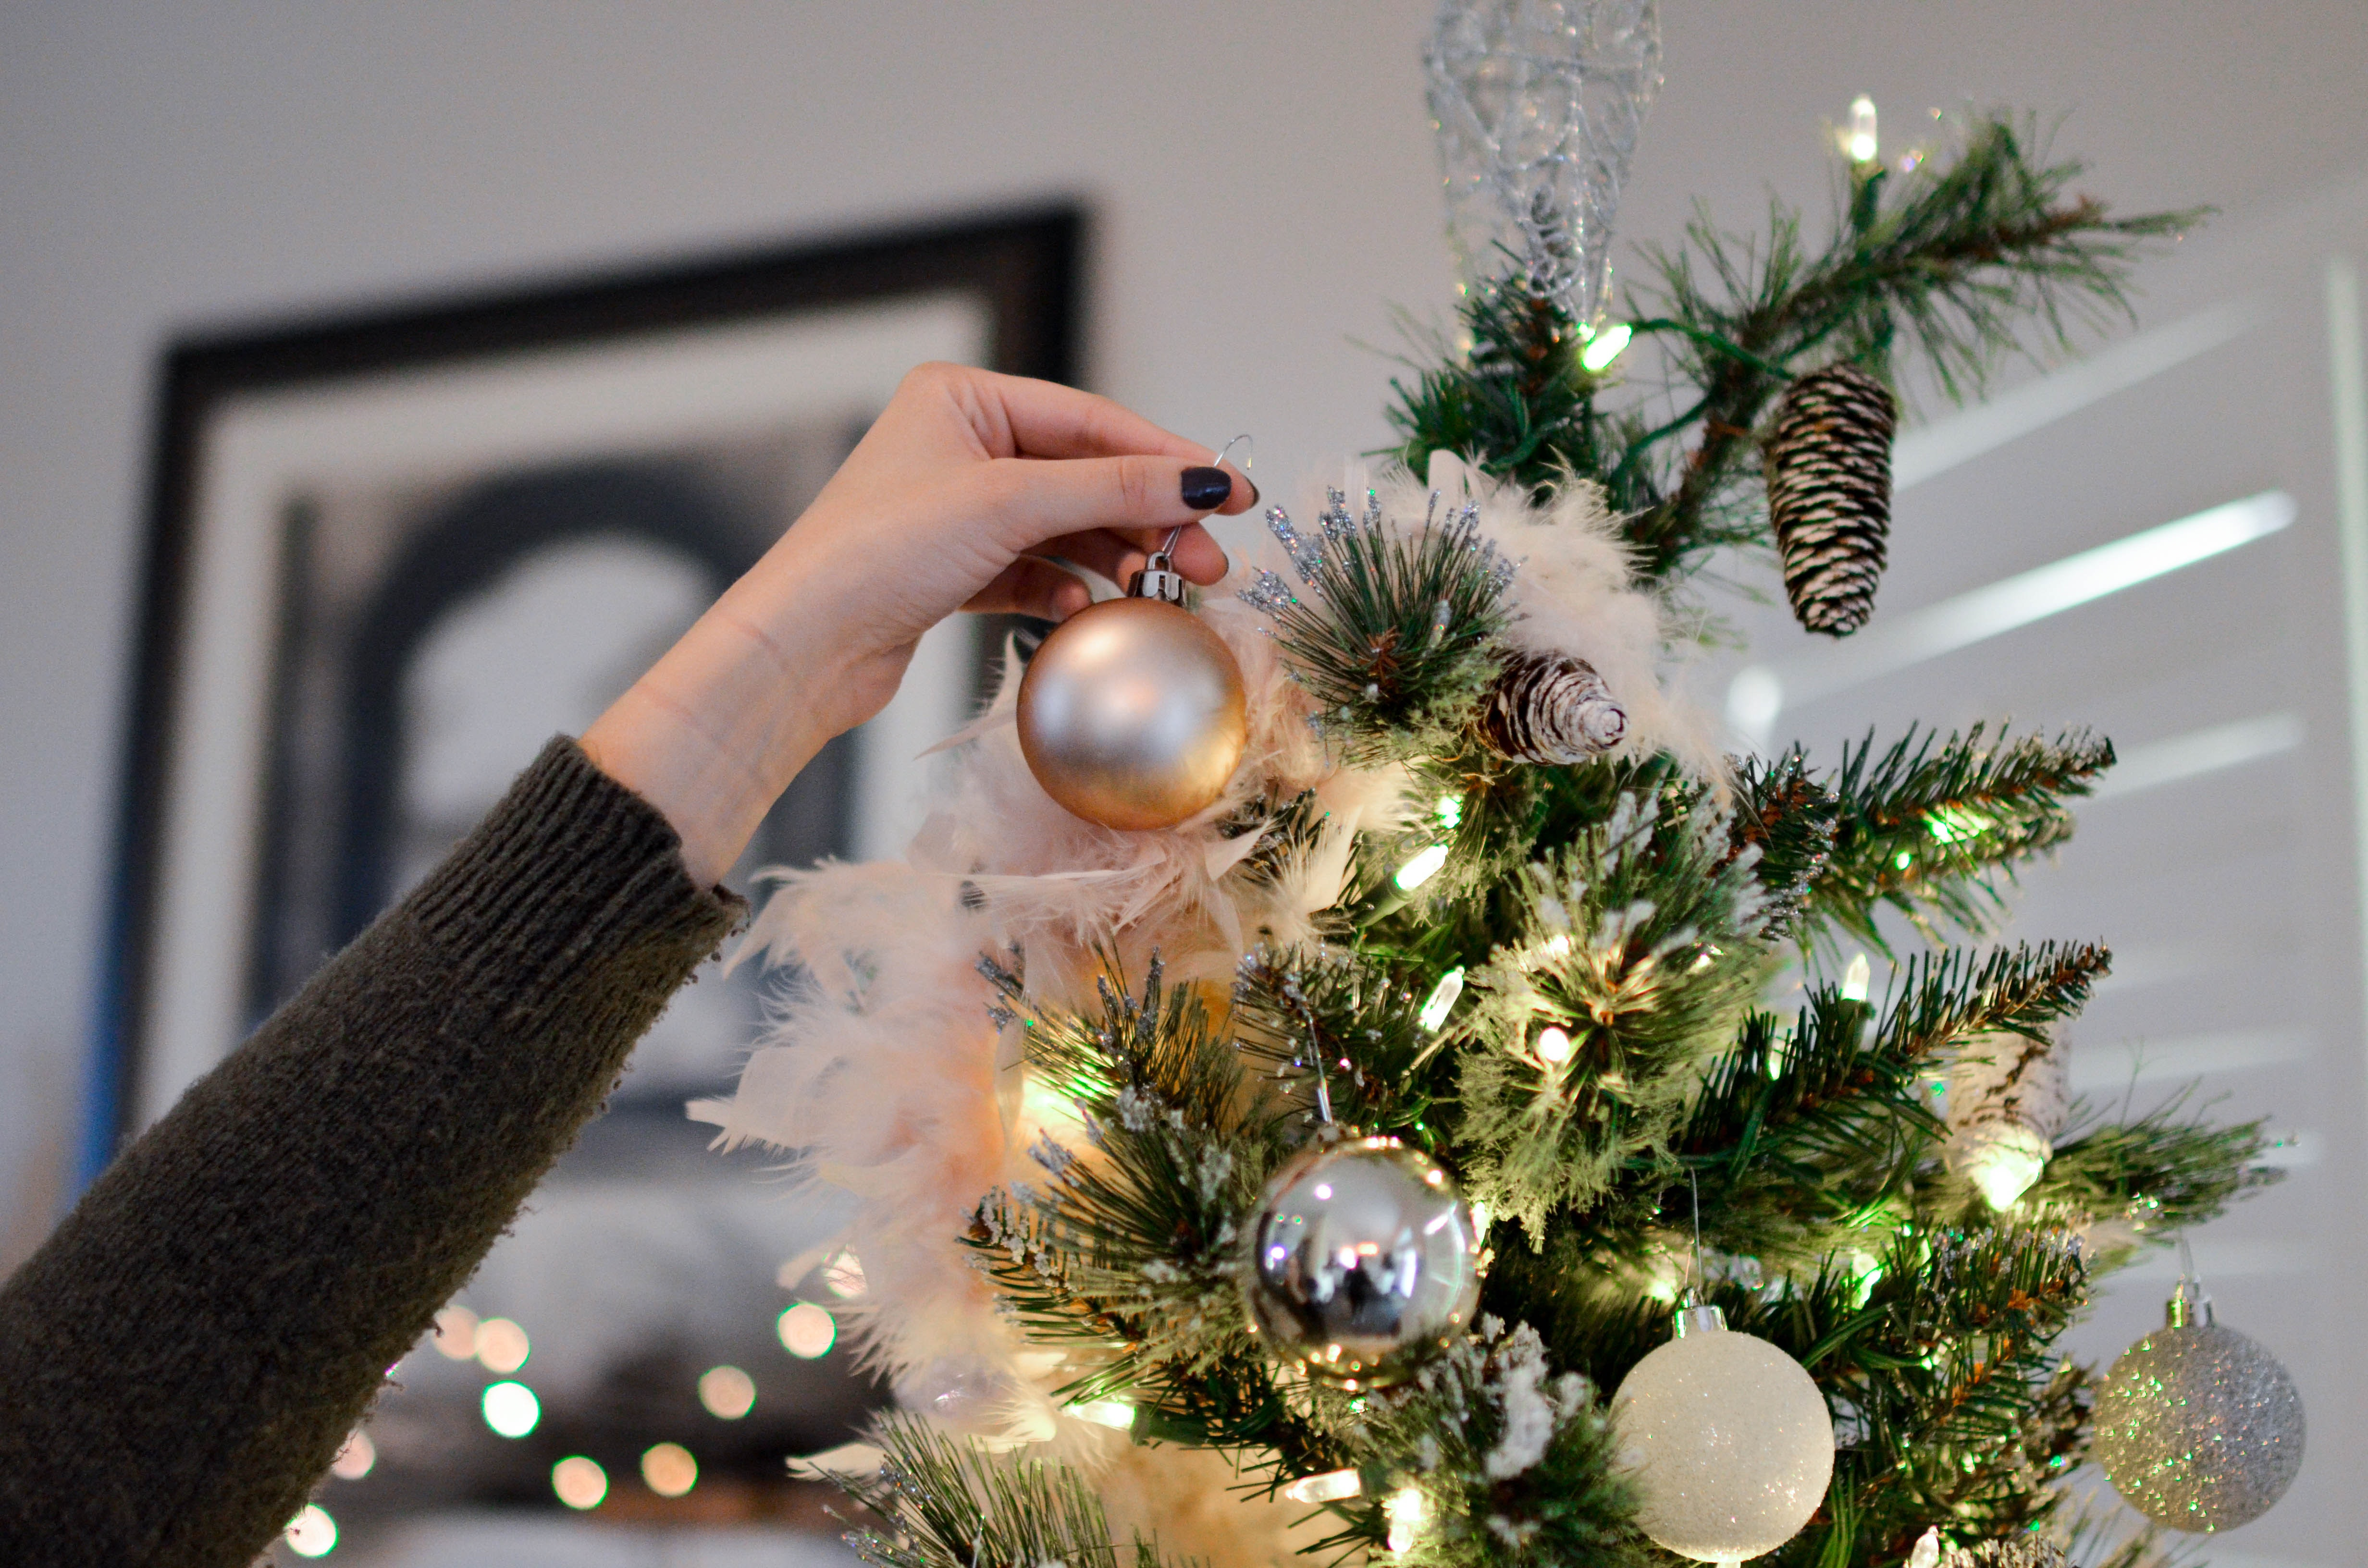 Hanfing a golden ornament on a tree with pinecones and christmas lights